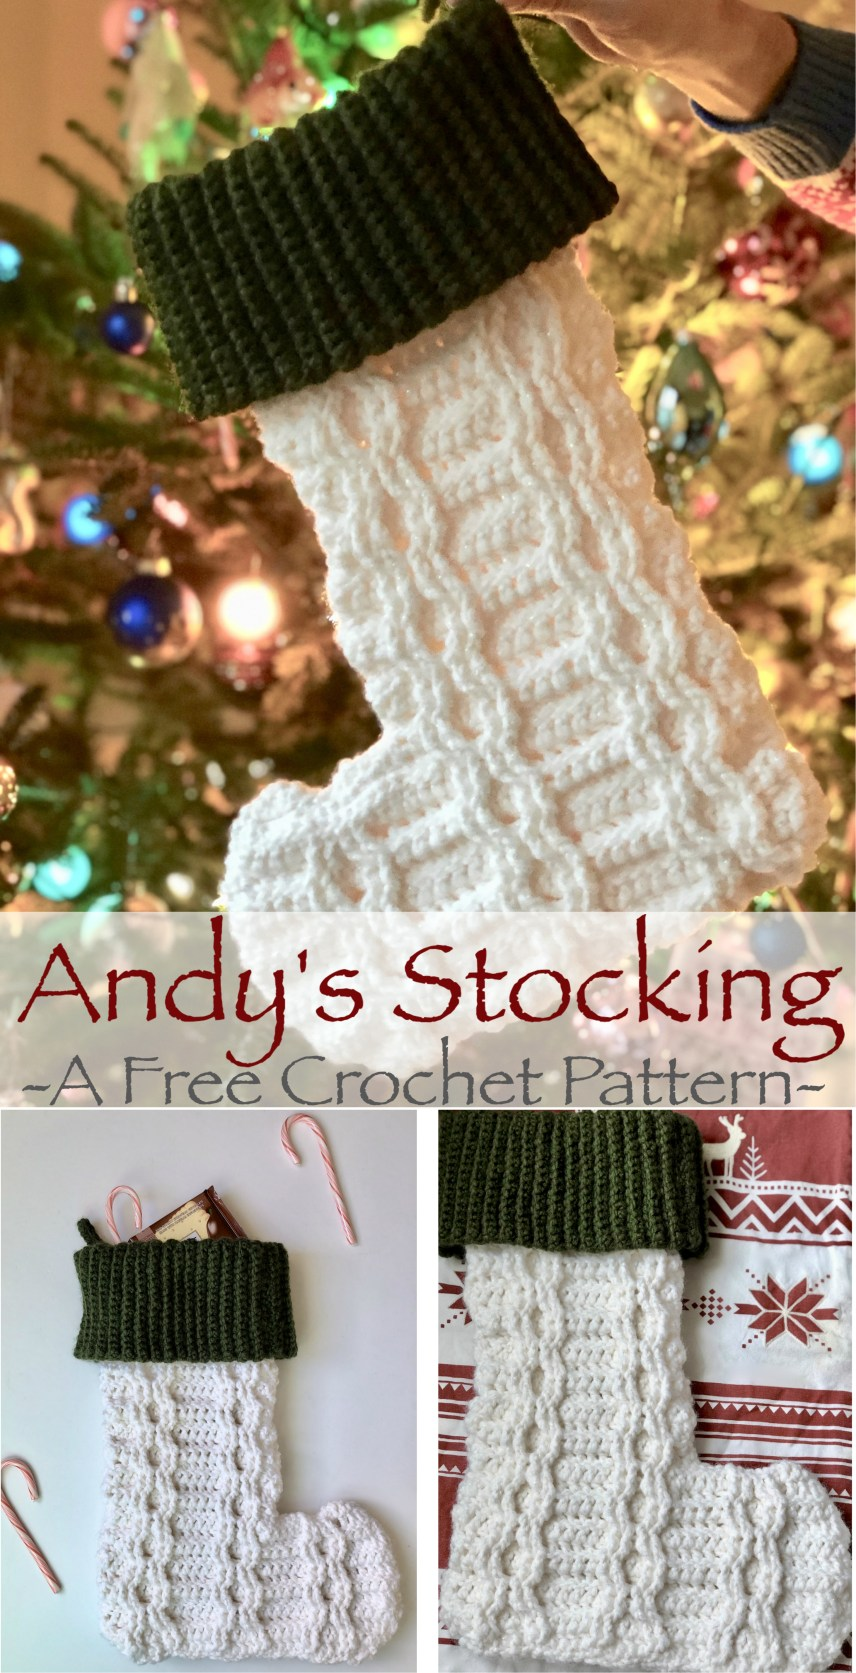 Andy's Stocking- Free Crochet Pattern .jpg